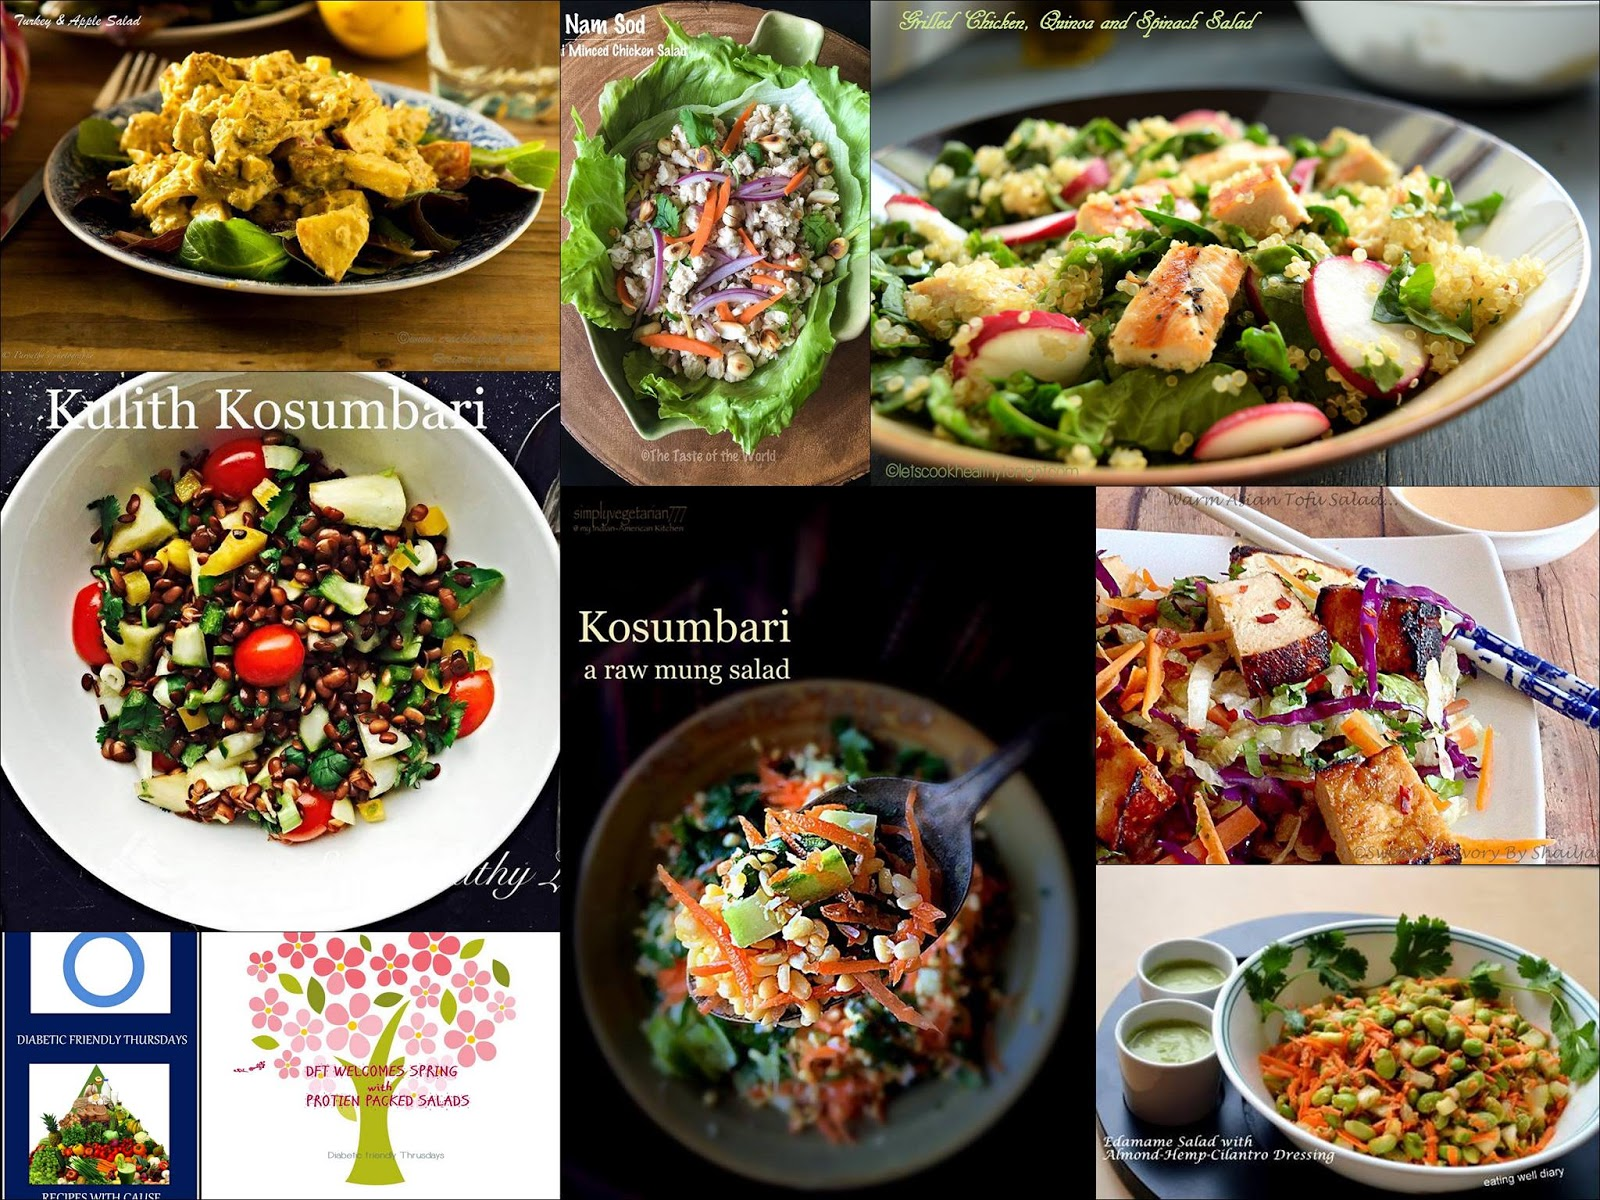 Sus healthy living kulith kosumbari horse gram salad diabetes cleansing of house and yards discarding the old and welcoming the new lets begin the onset of spring with some healthy protein packed salads forumfinder Gallery